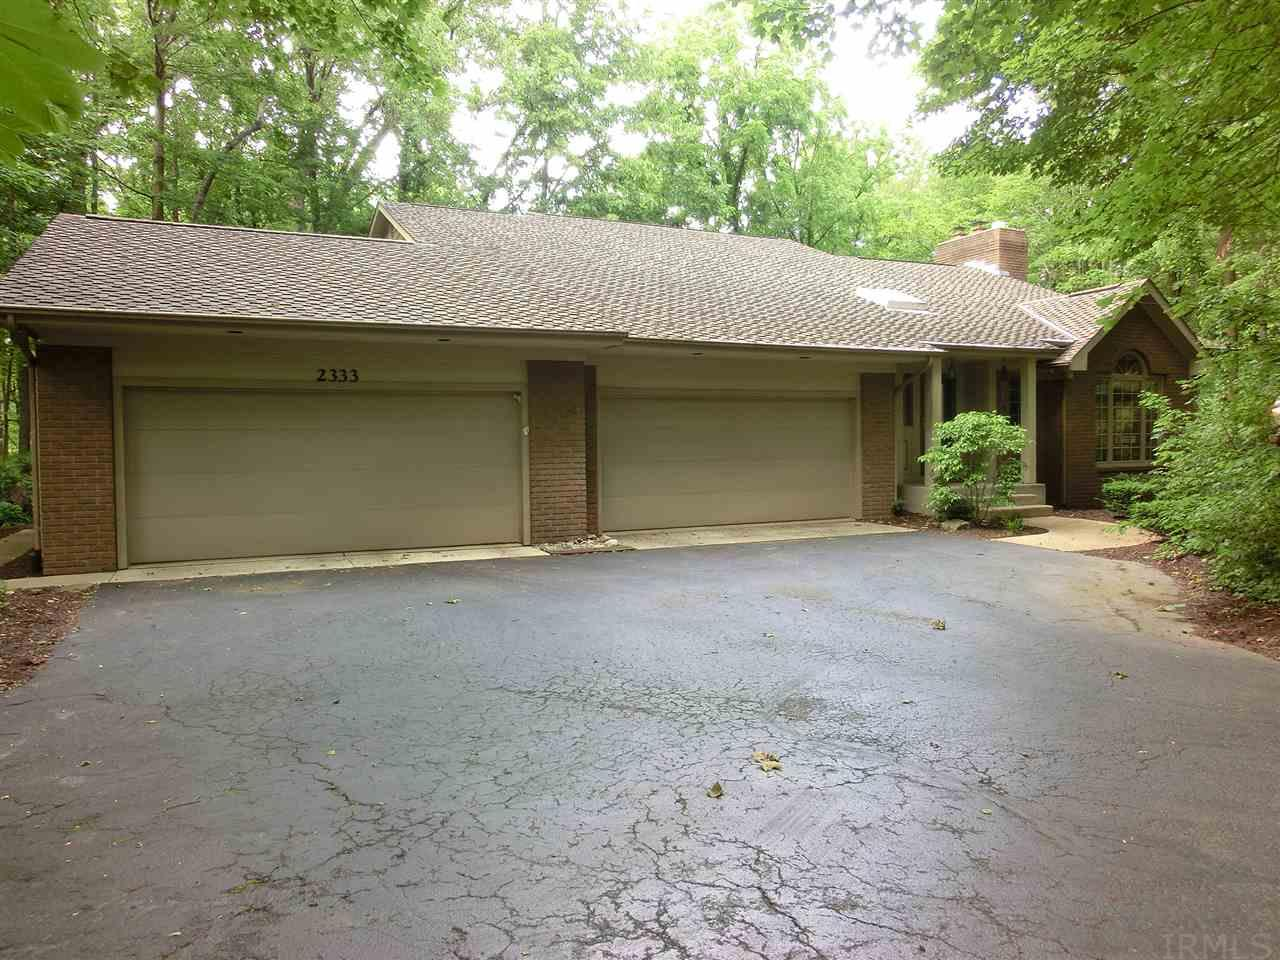 2333 Foxchase Run, Fort Wayne, IN 46825